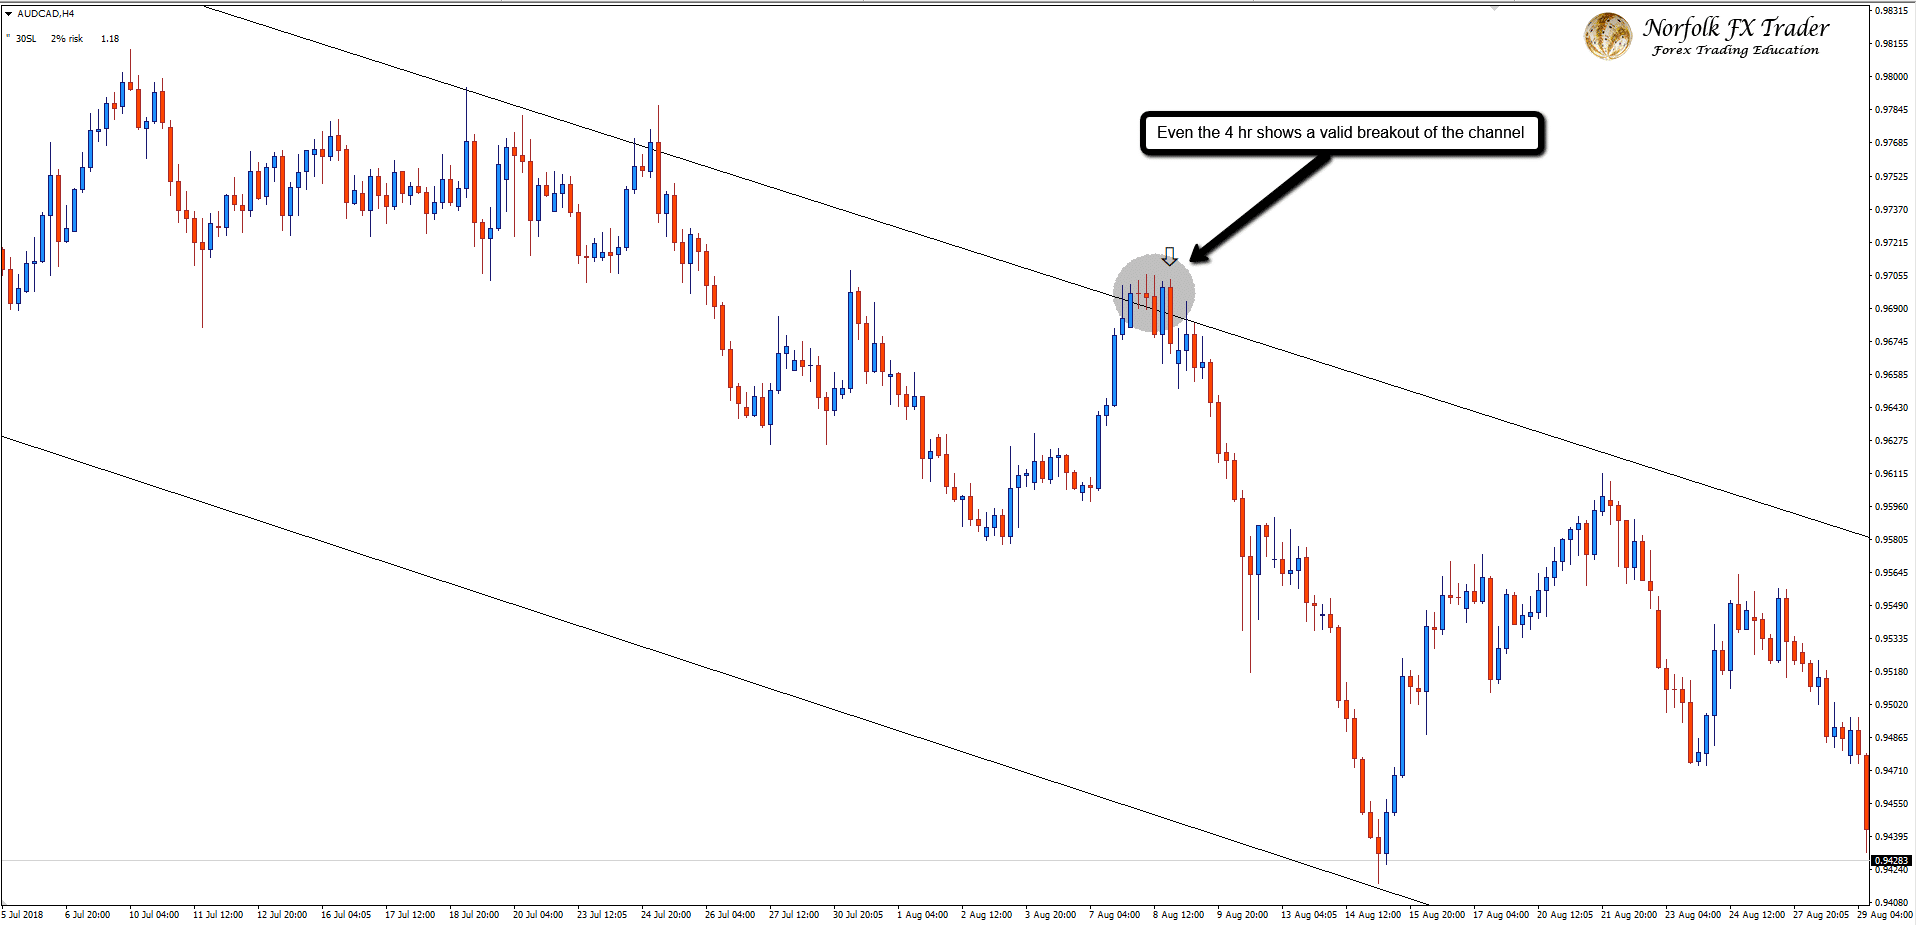 4-hour Forex market trading descending channel